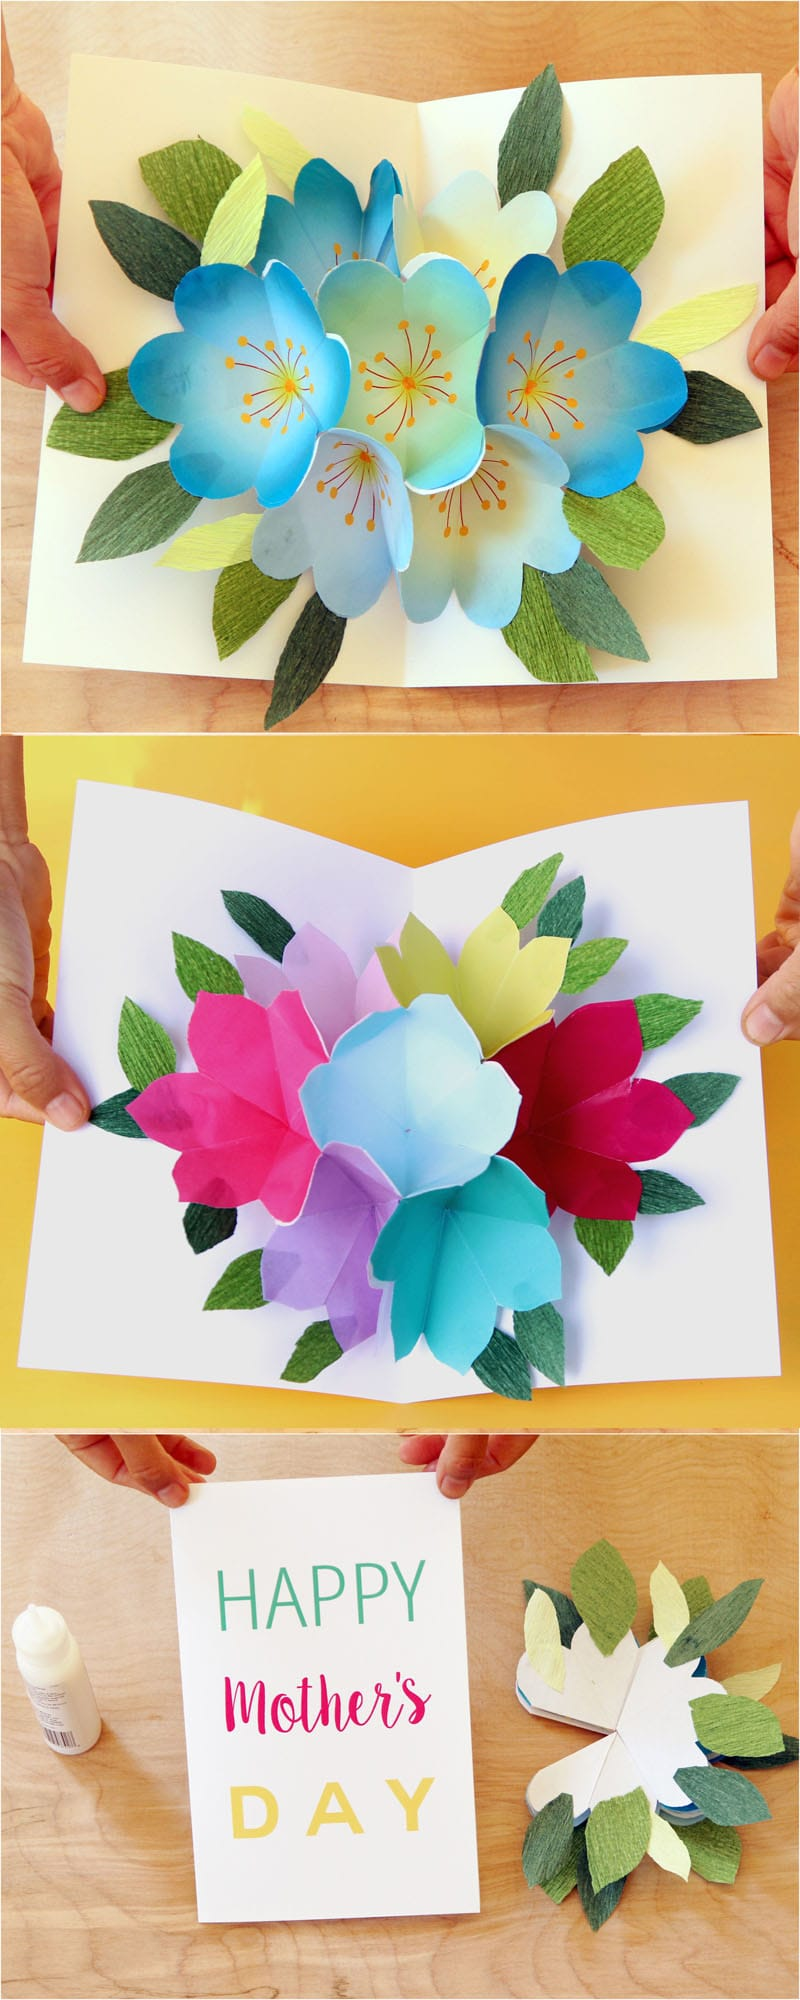 Pop up flowers diy printable mothers day card a piece of rainbow in addition to the free printable mothers day card and the pop up bouquet templates i will also share with you another set of pop up flowers templates with kristyandbryce Choice Image